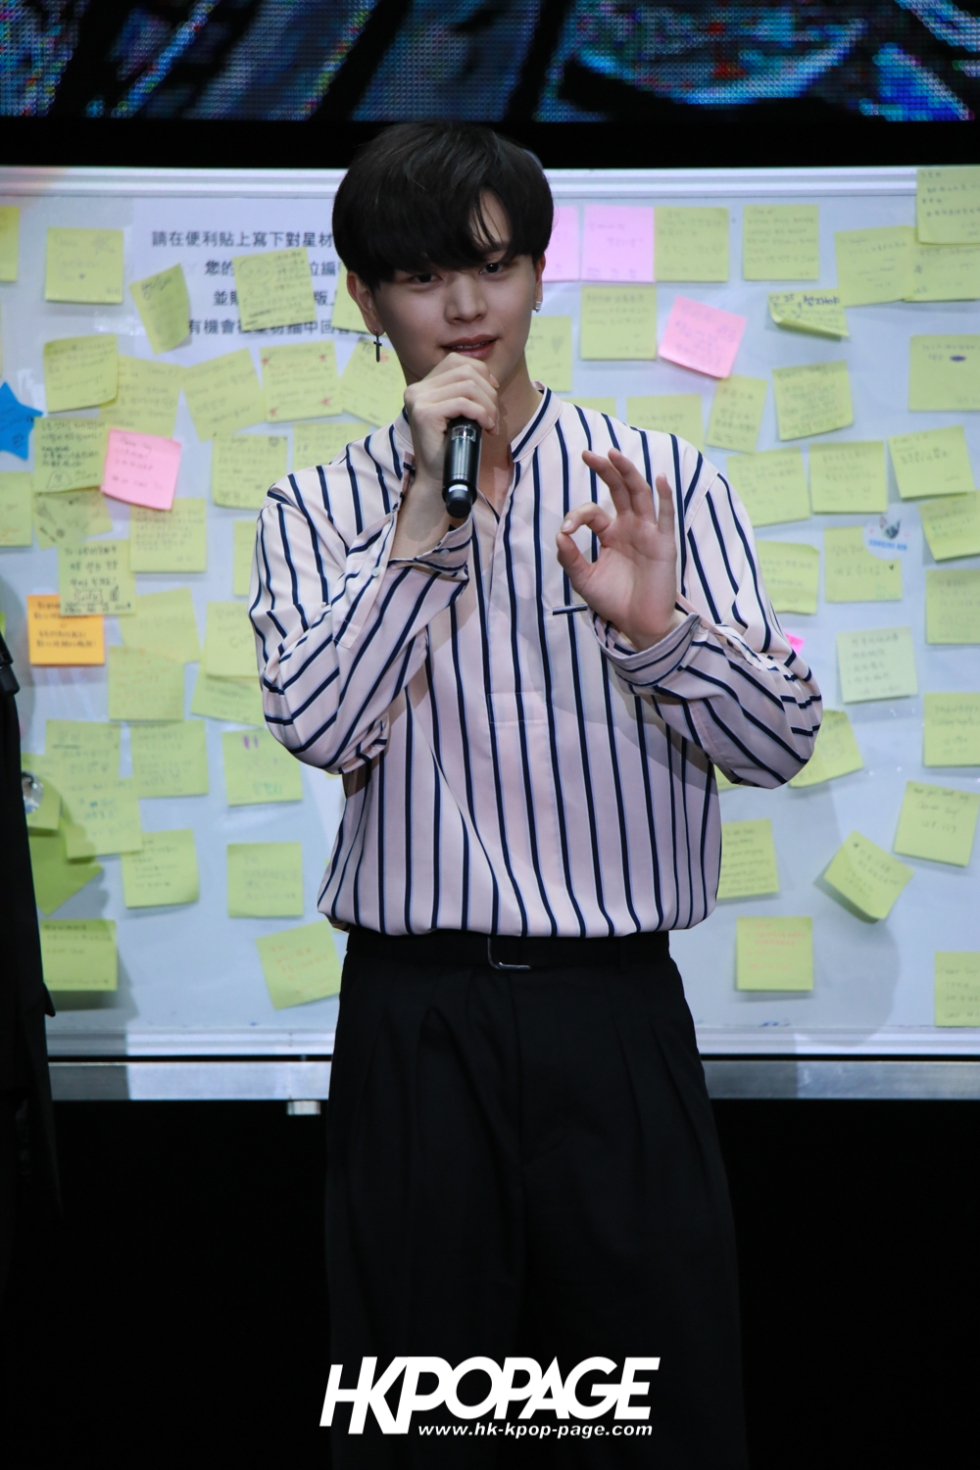 "[HK.KPOP.PAGE] 180519_Yook Sung Jae""Paradise""Fan Meeting in Hong Kong_22"